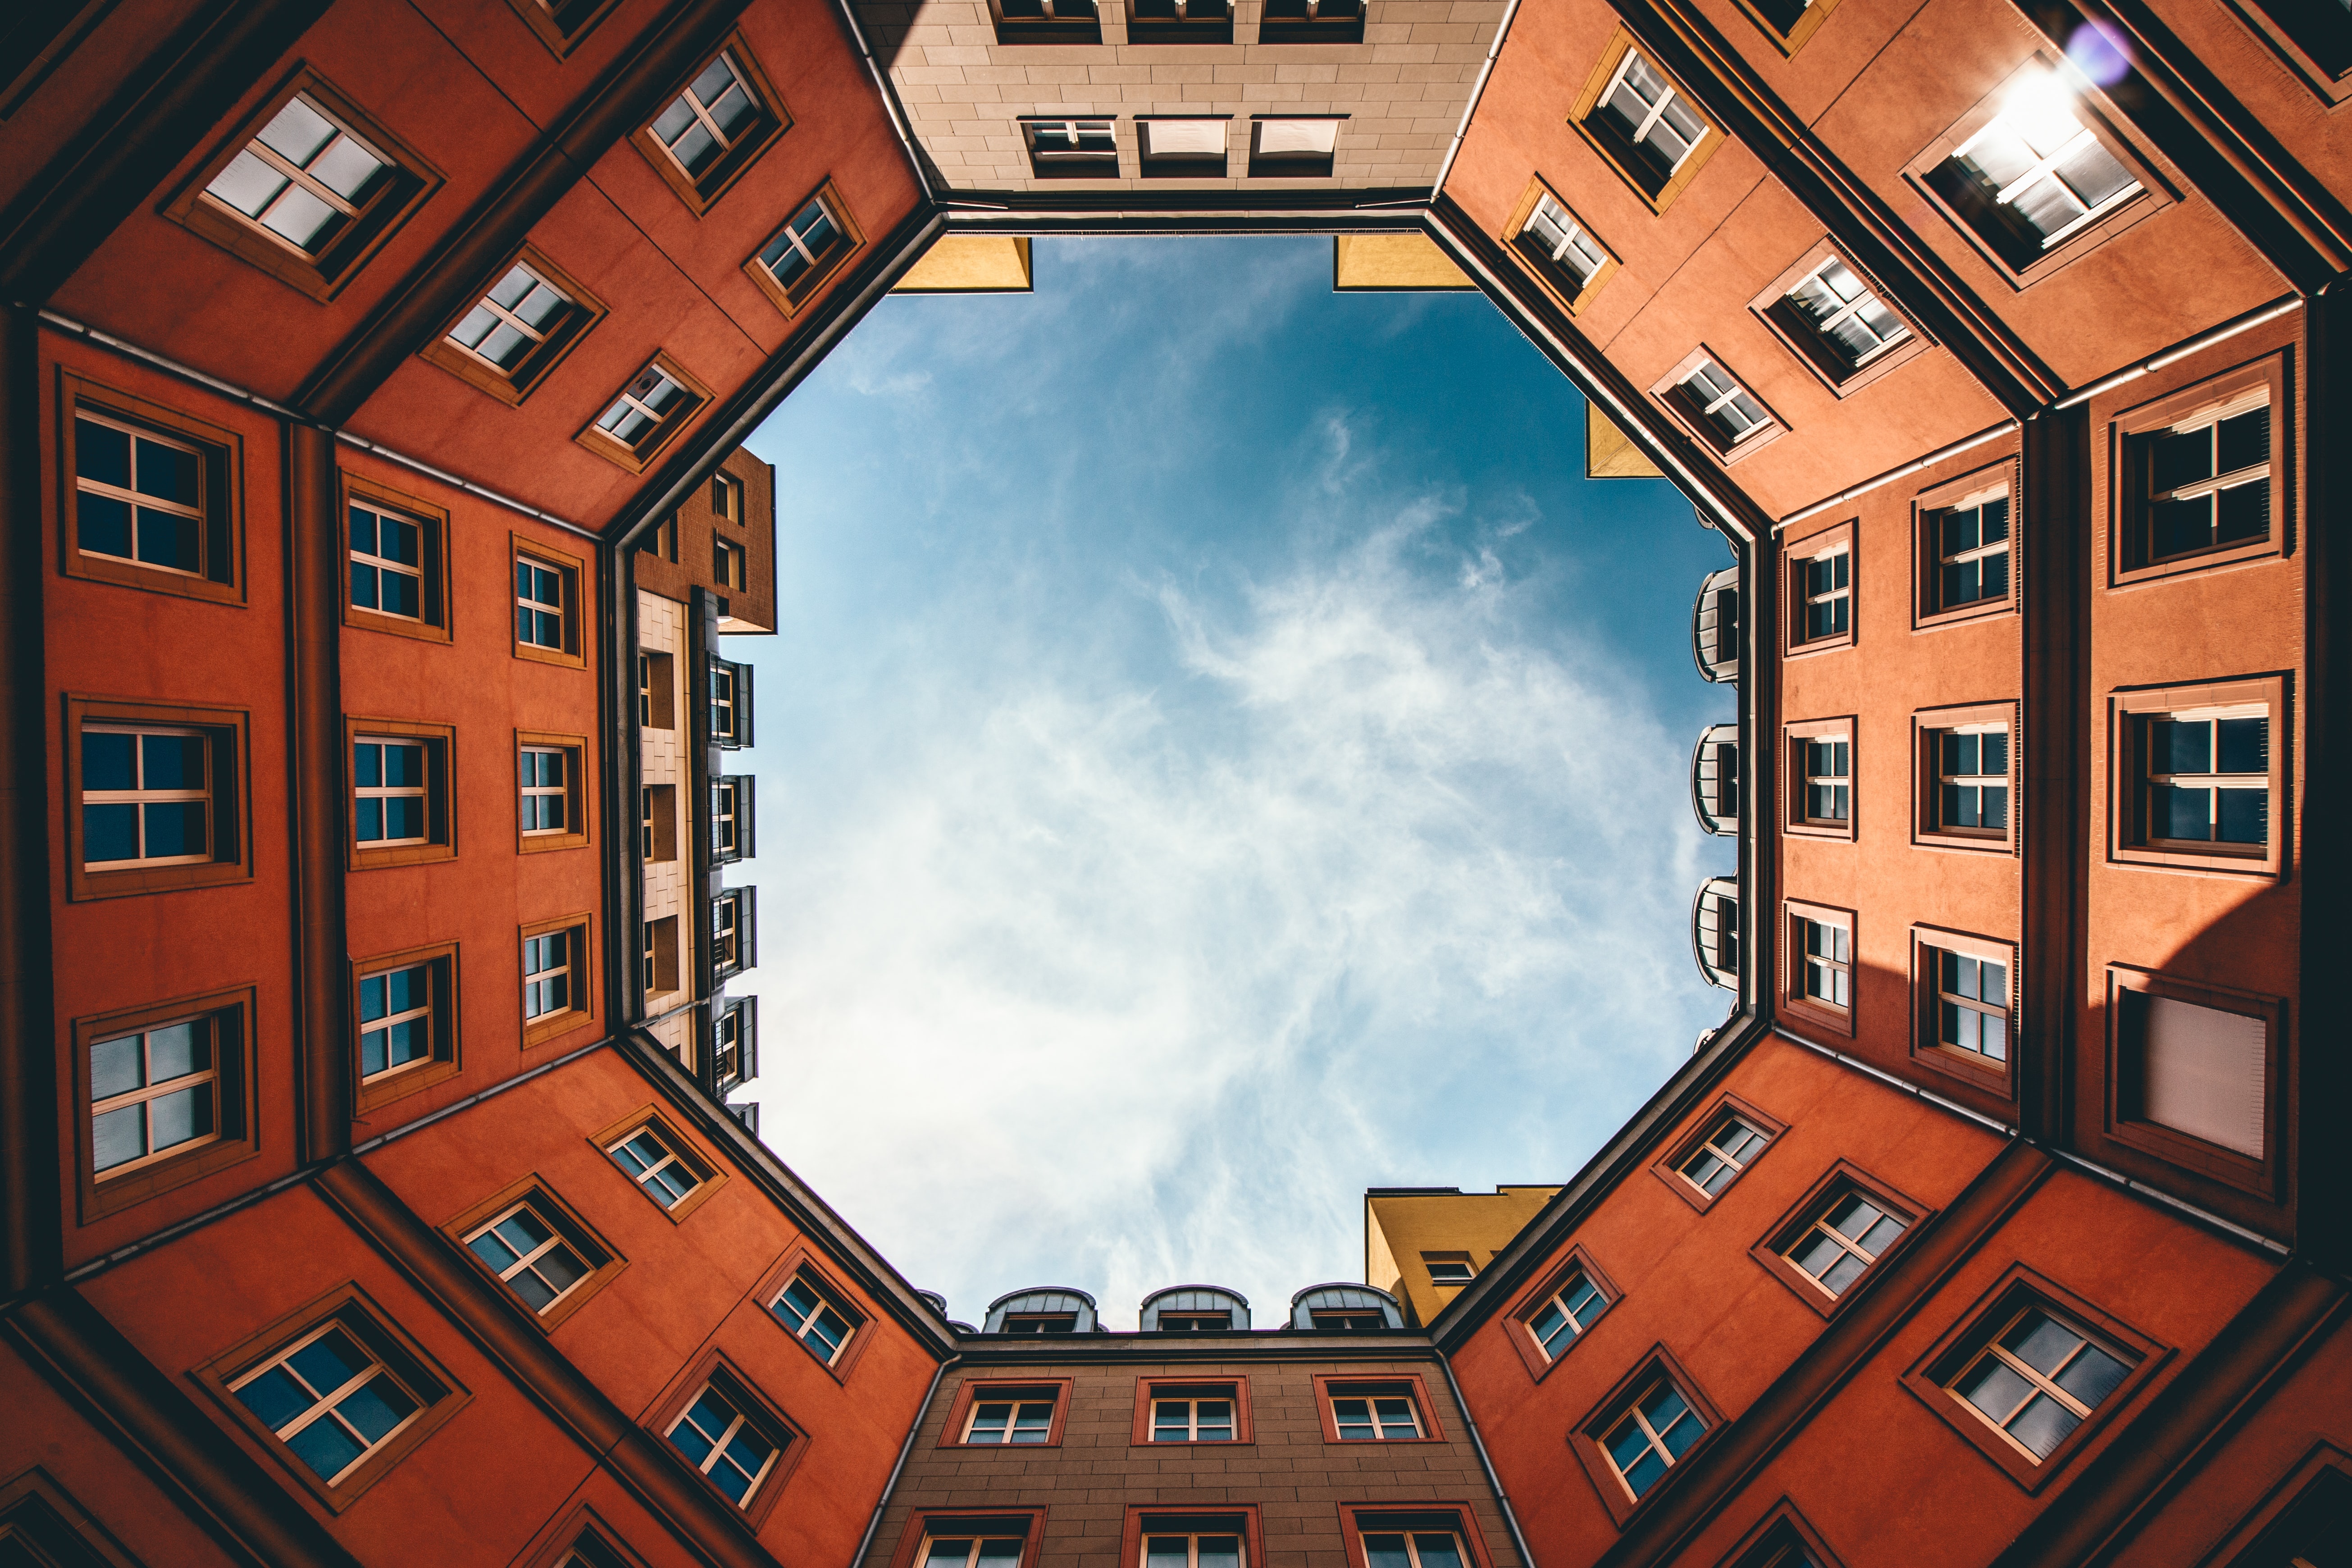 low-angle photography of hexgonal orange and brown concrete building under white clouds and blue sky during daytime